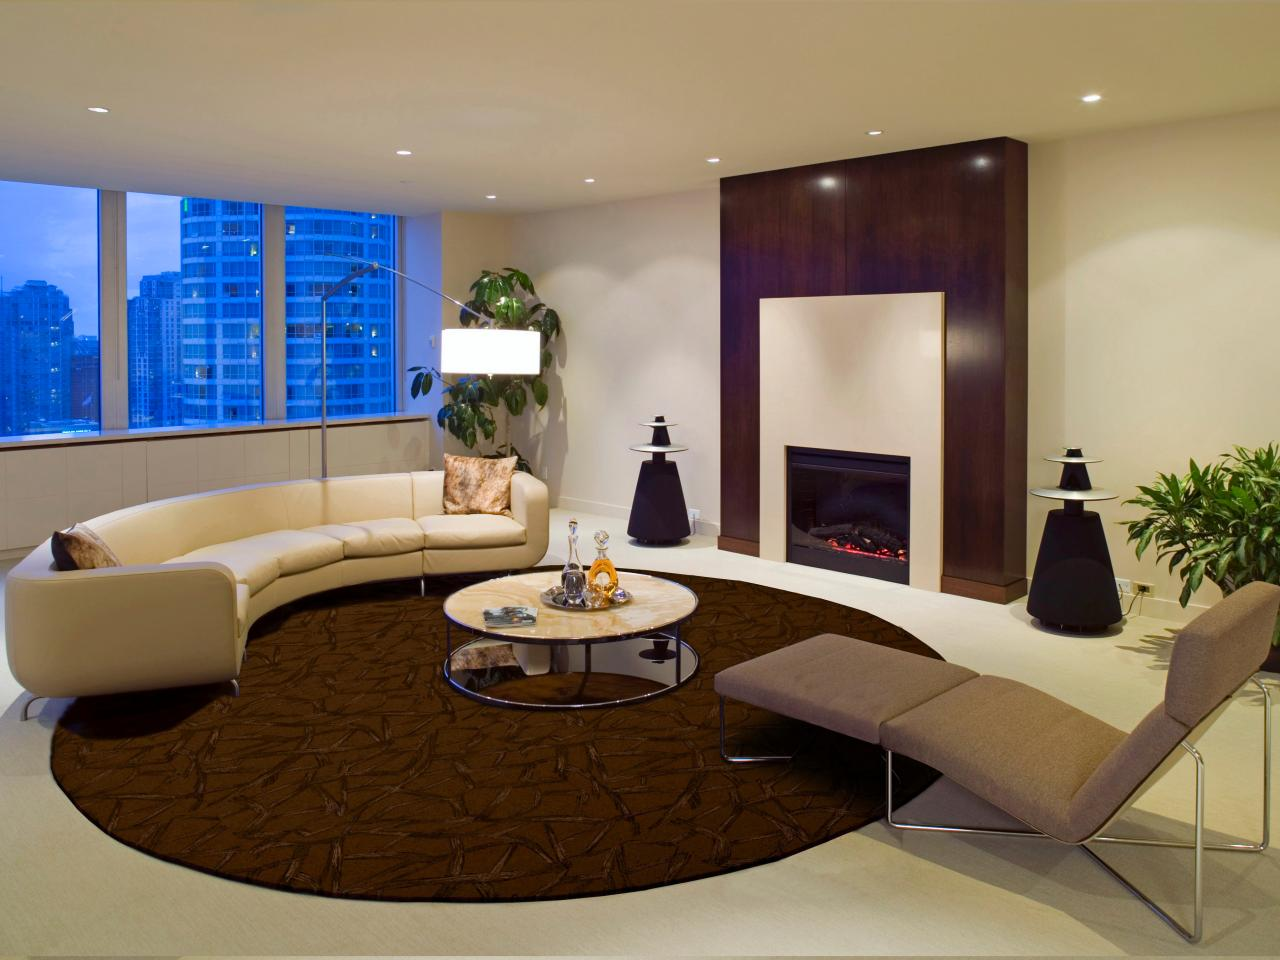 Modern Living Room Rug Choosing The Best Area Rug For Your Space Hgtv